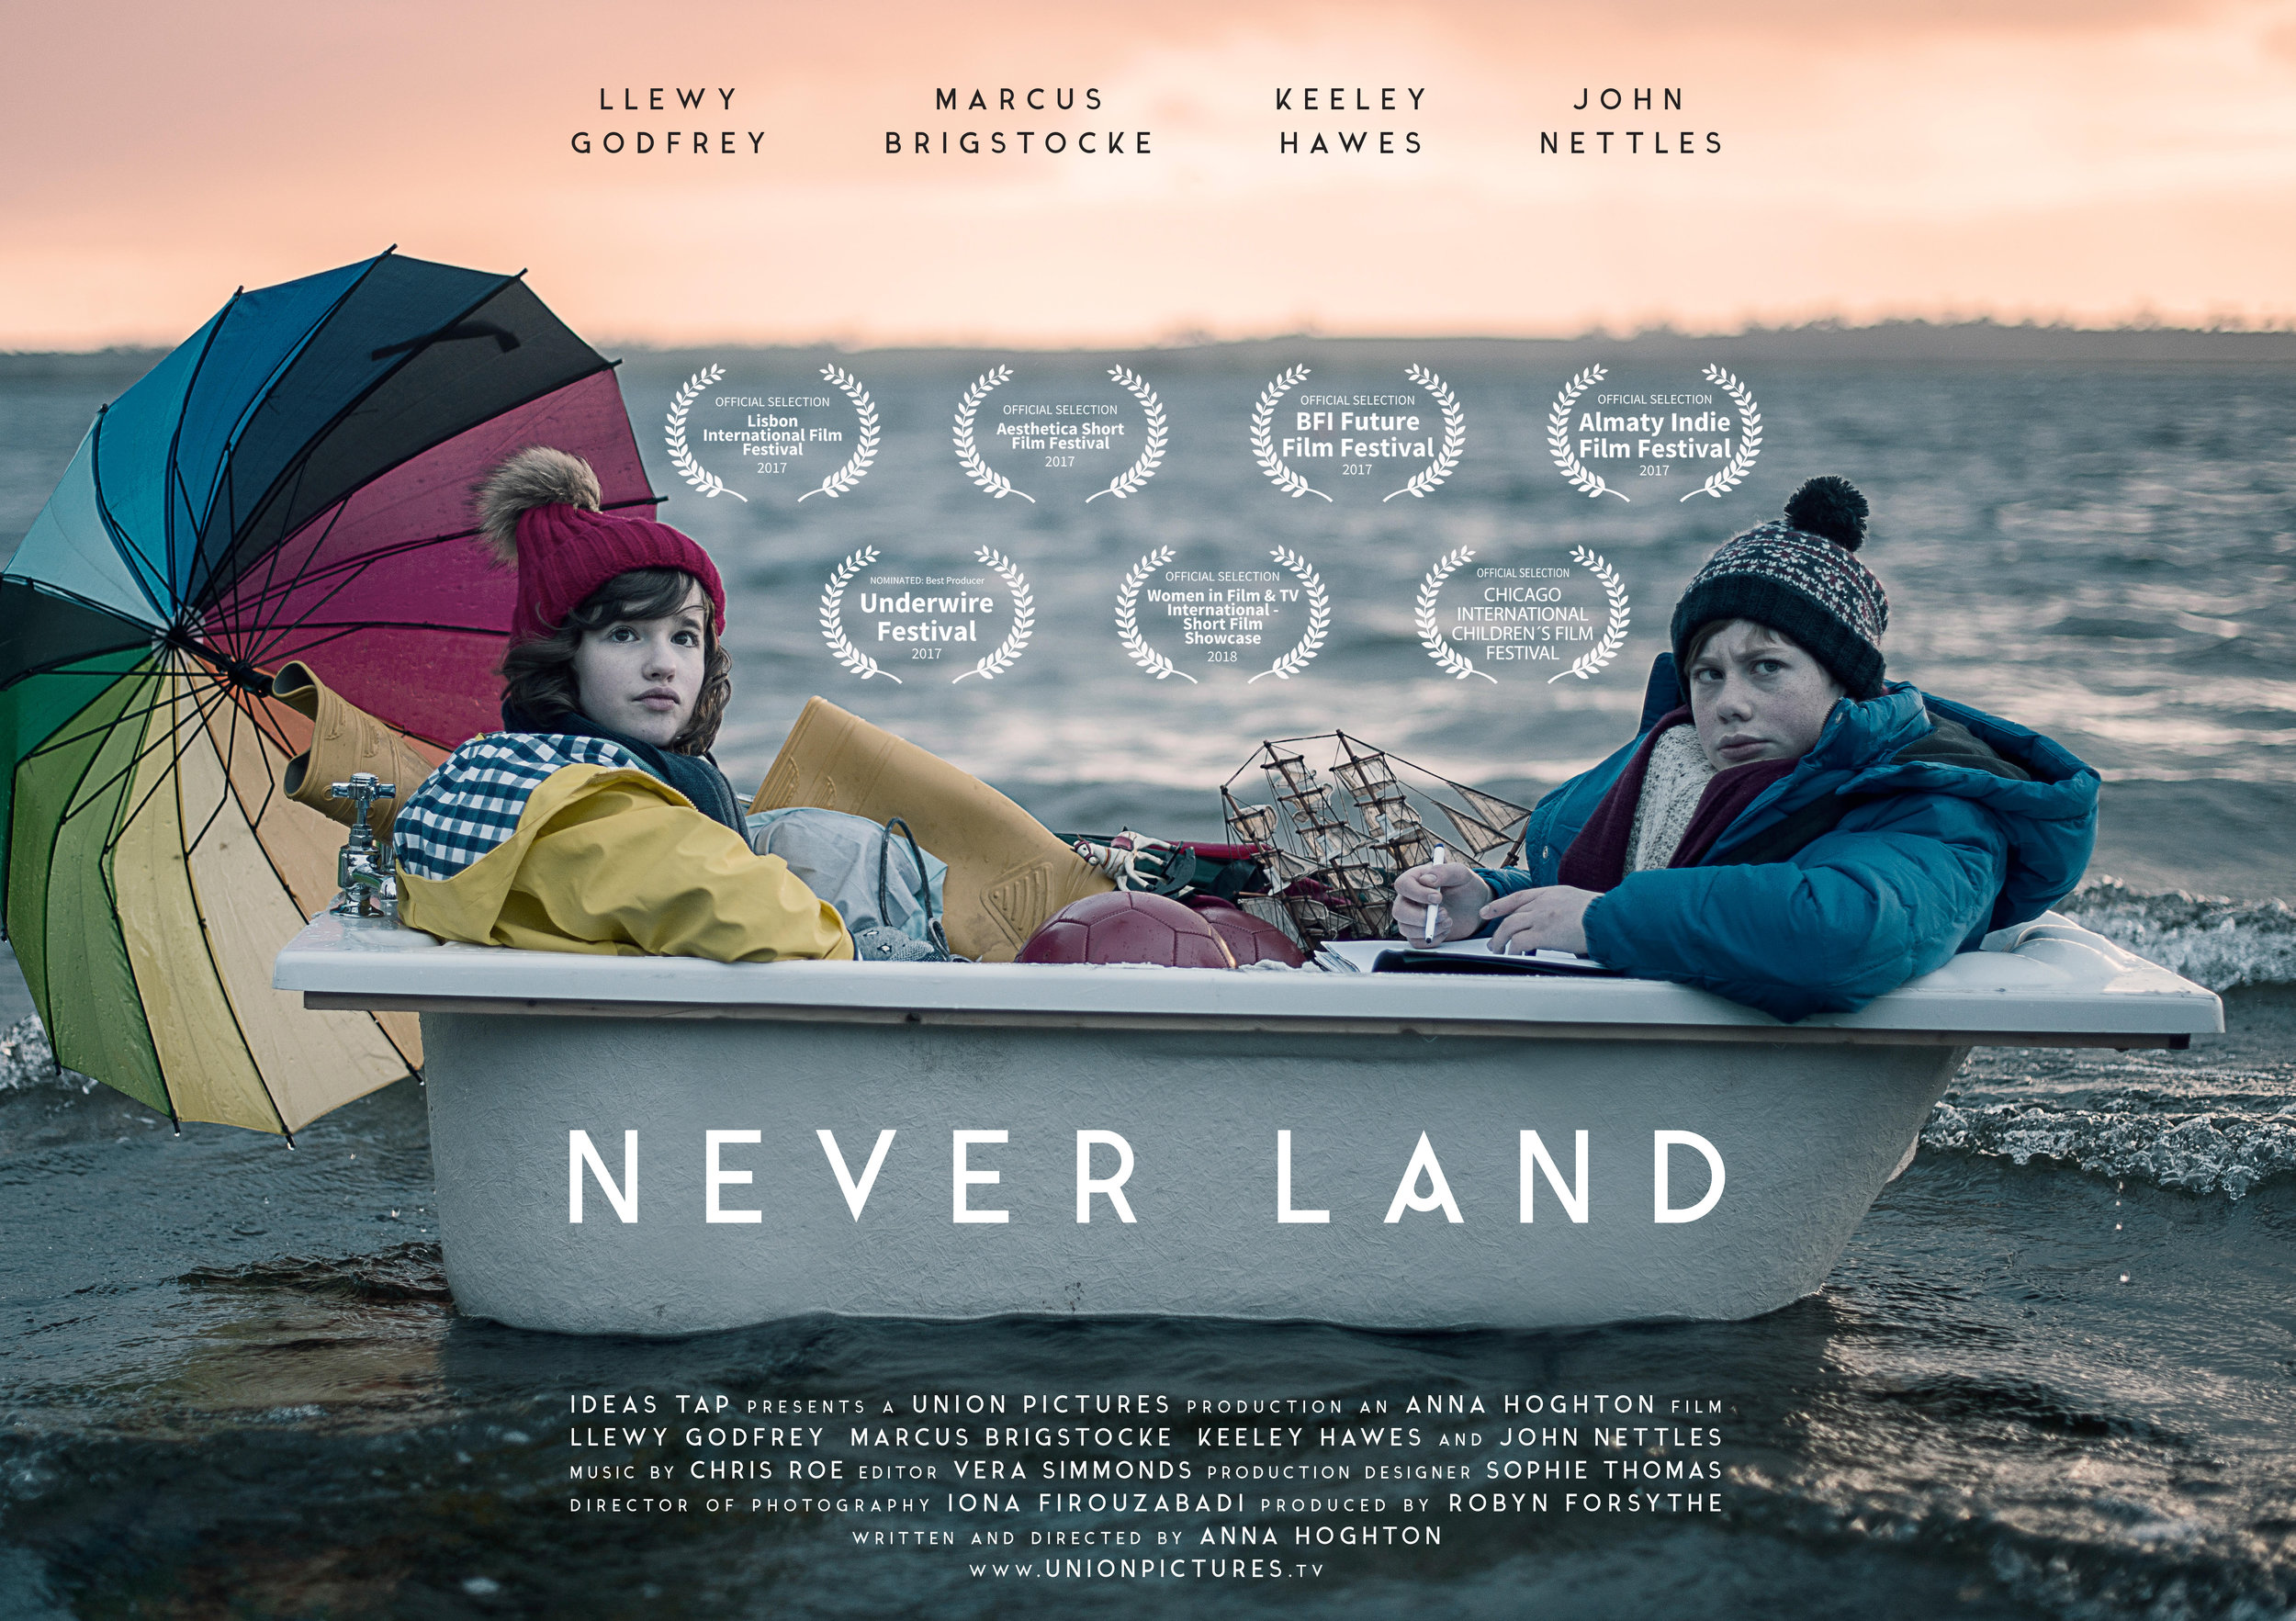 Festivals - Never Land has been part of the official selection at the following film festivals:Underwire Film Festival - nominated Best ProducerAesthetica Short Film FestivalBFI Future Film FestivalLisbon International Film FestivalChicago Children's Film FestivalAlmaty Indie Film FestivalWomen In Film & TV official showcase